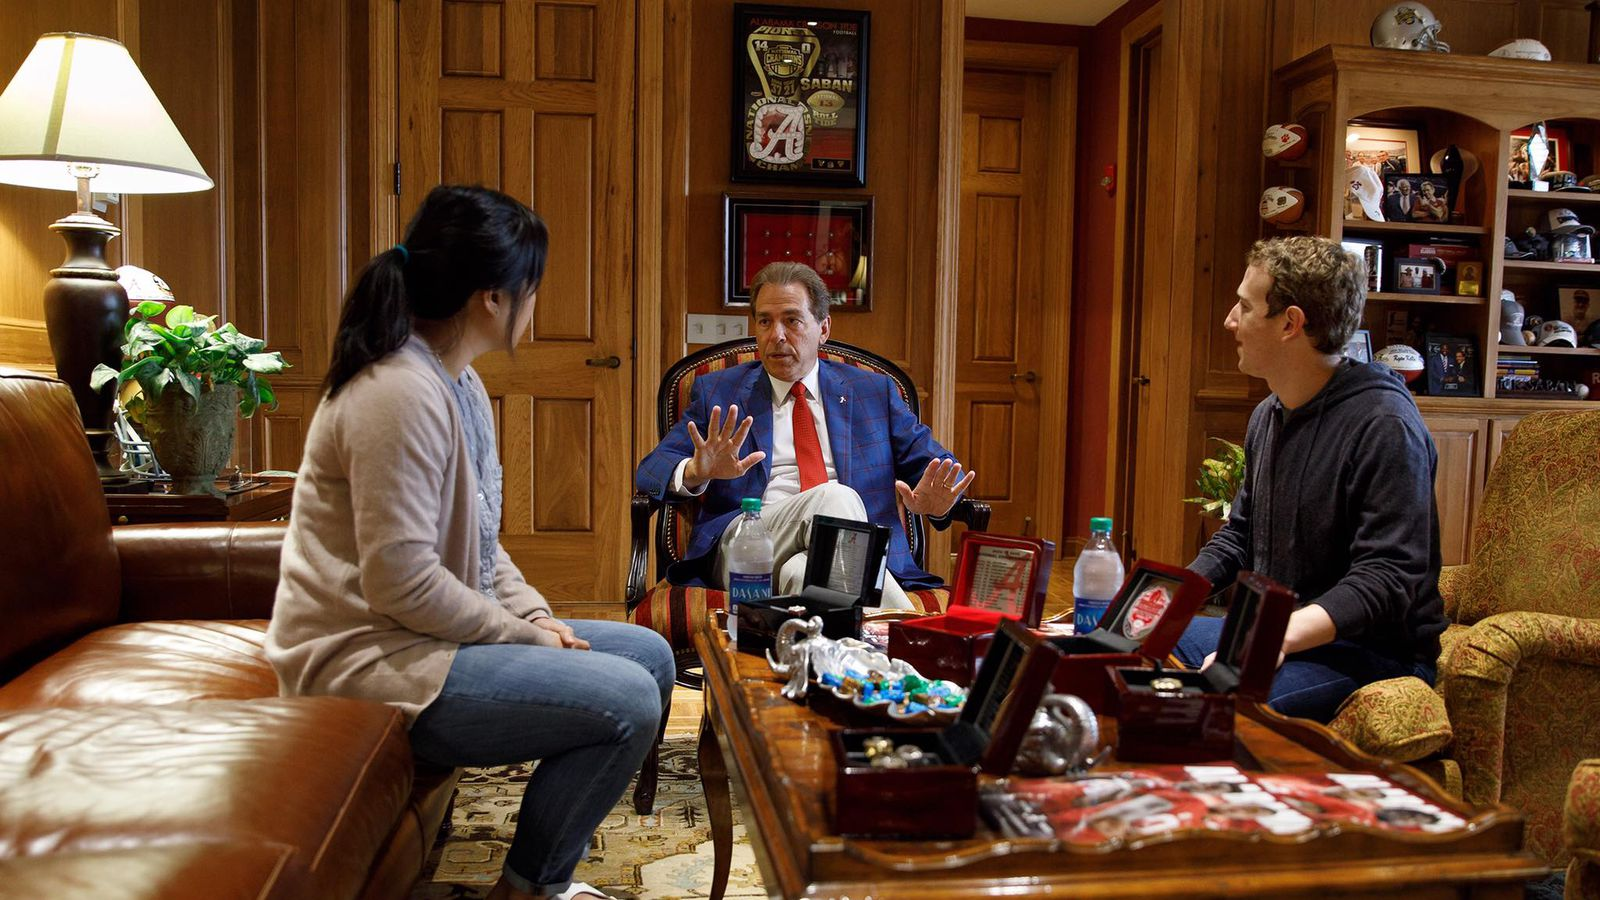 'The Facebook guy' Mark Zuckerberg hung out with Nick Saban and some Bama players